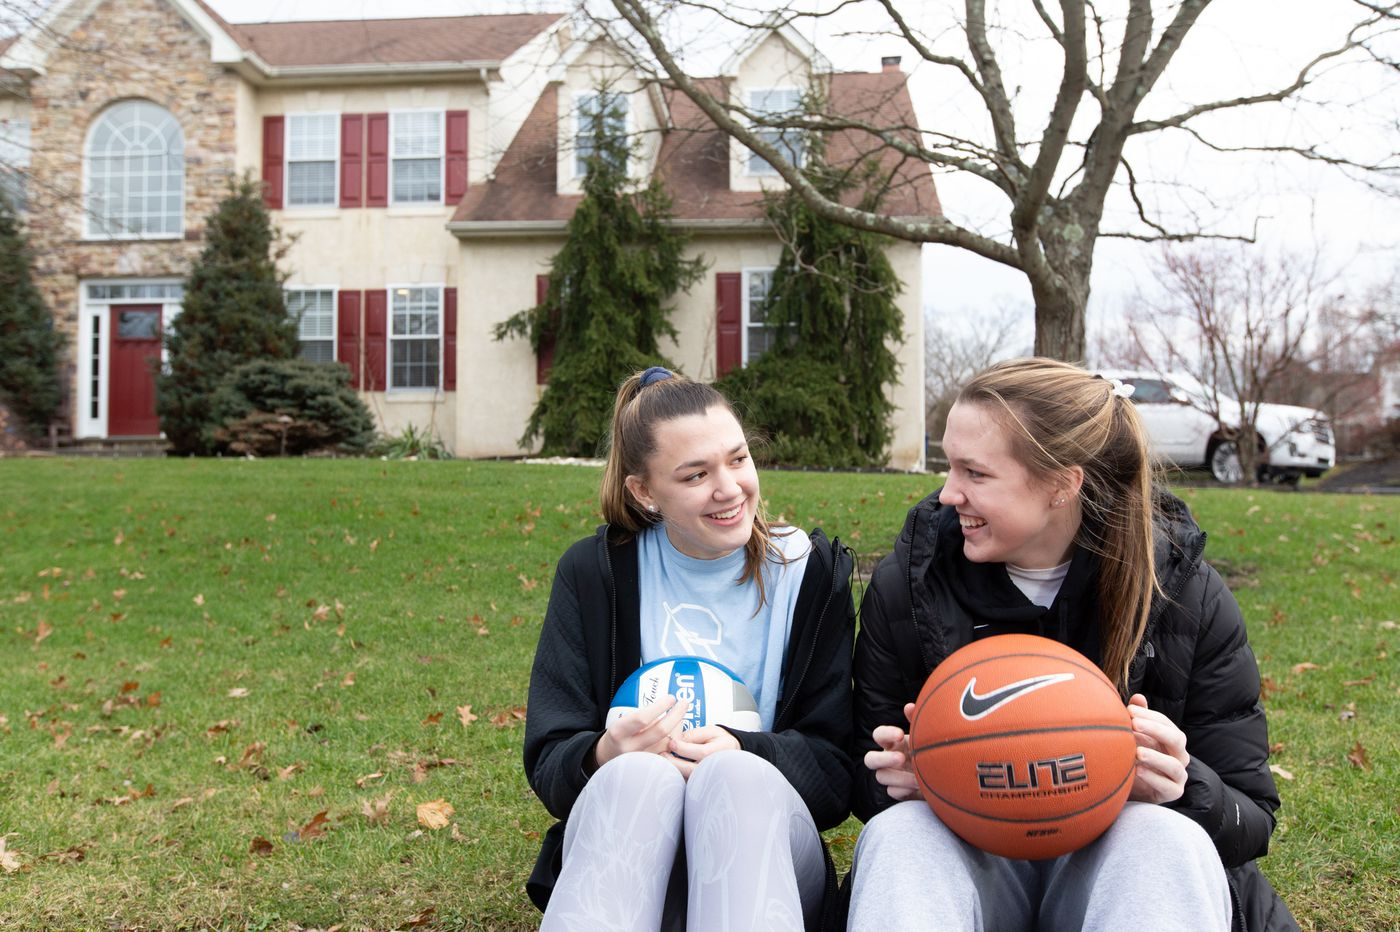 Twin-sister athletes Maddie and Allie Burke go to rival high schools but eat breakfast together every day